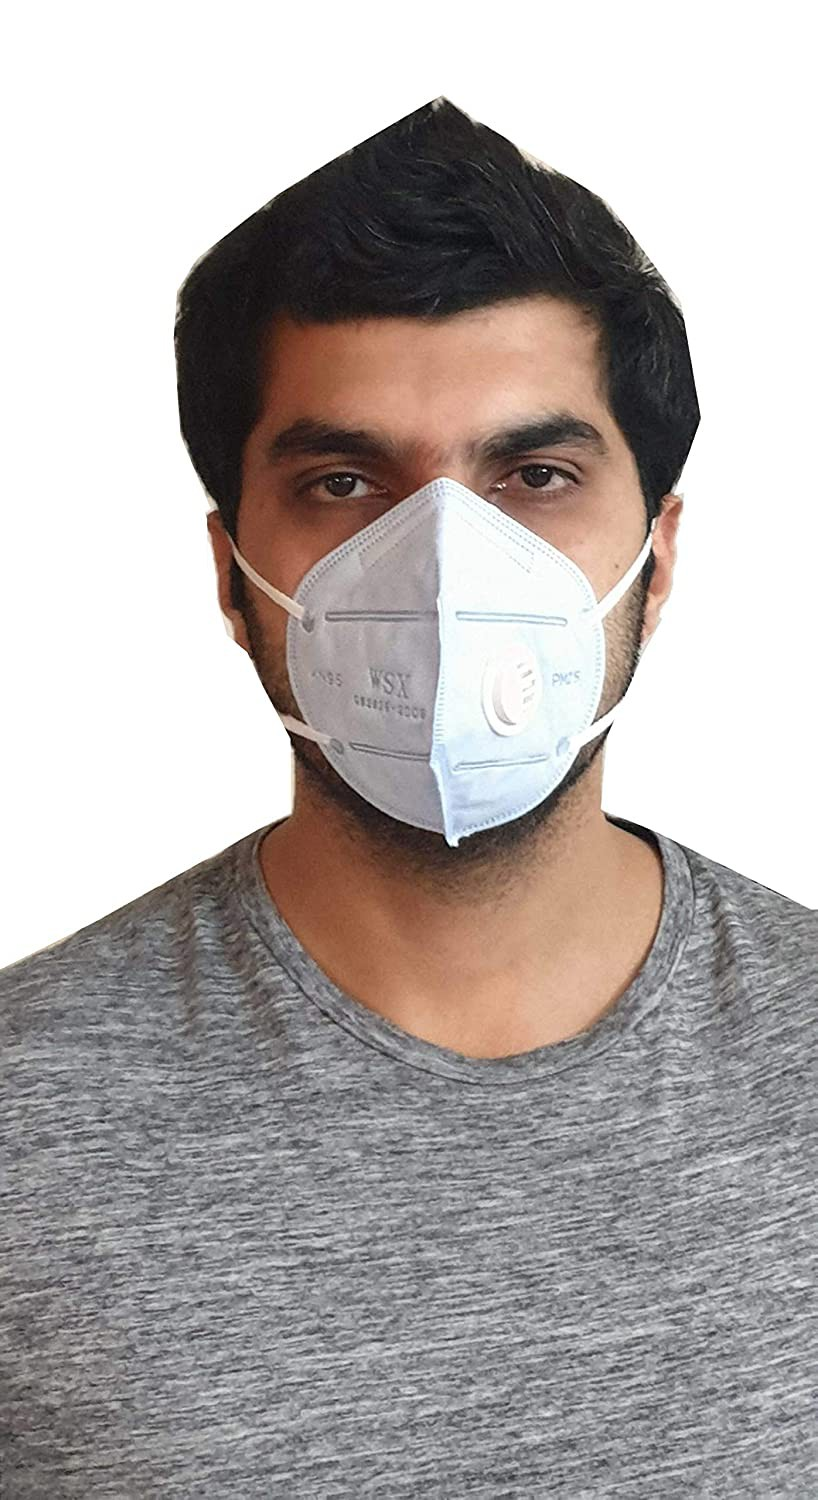 woschmann-kn95-pollution-mask-with-filter-good-to-fight-air-pollution-bacteria-white